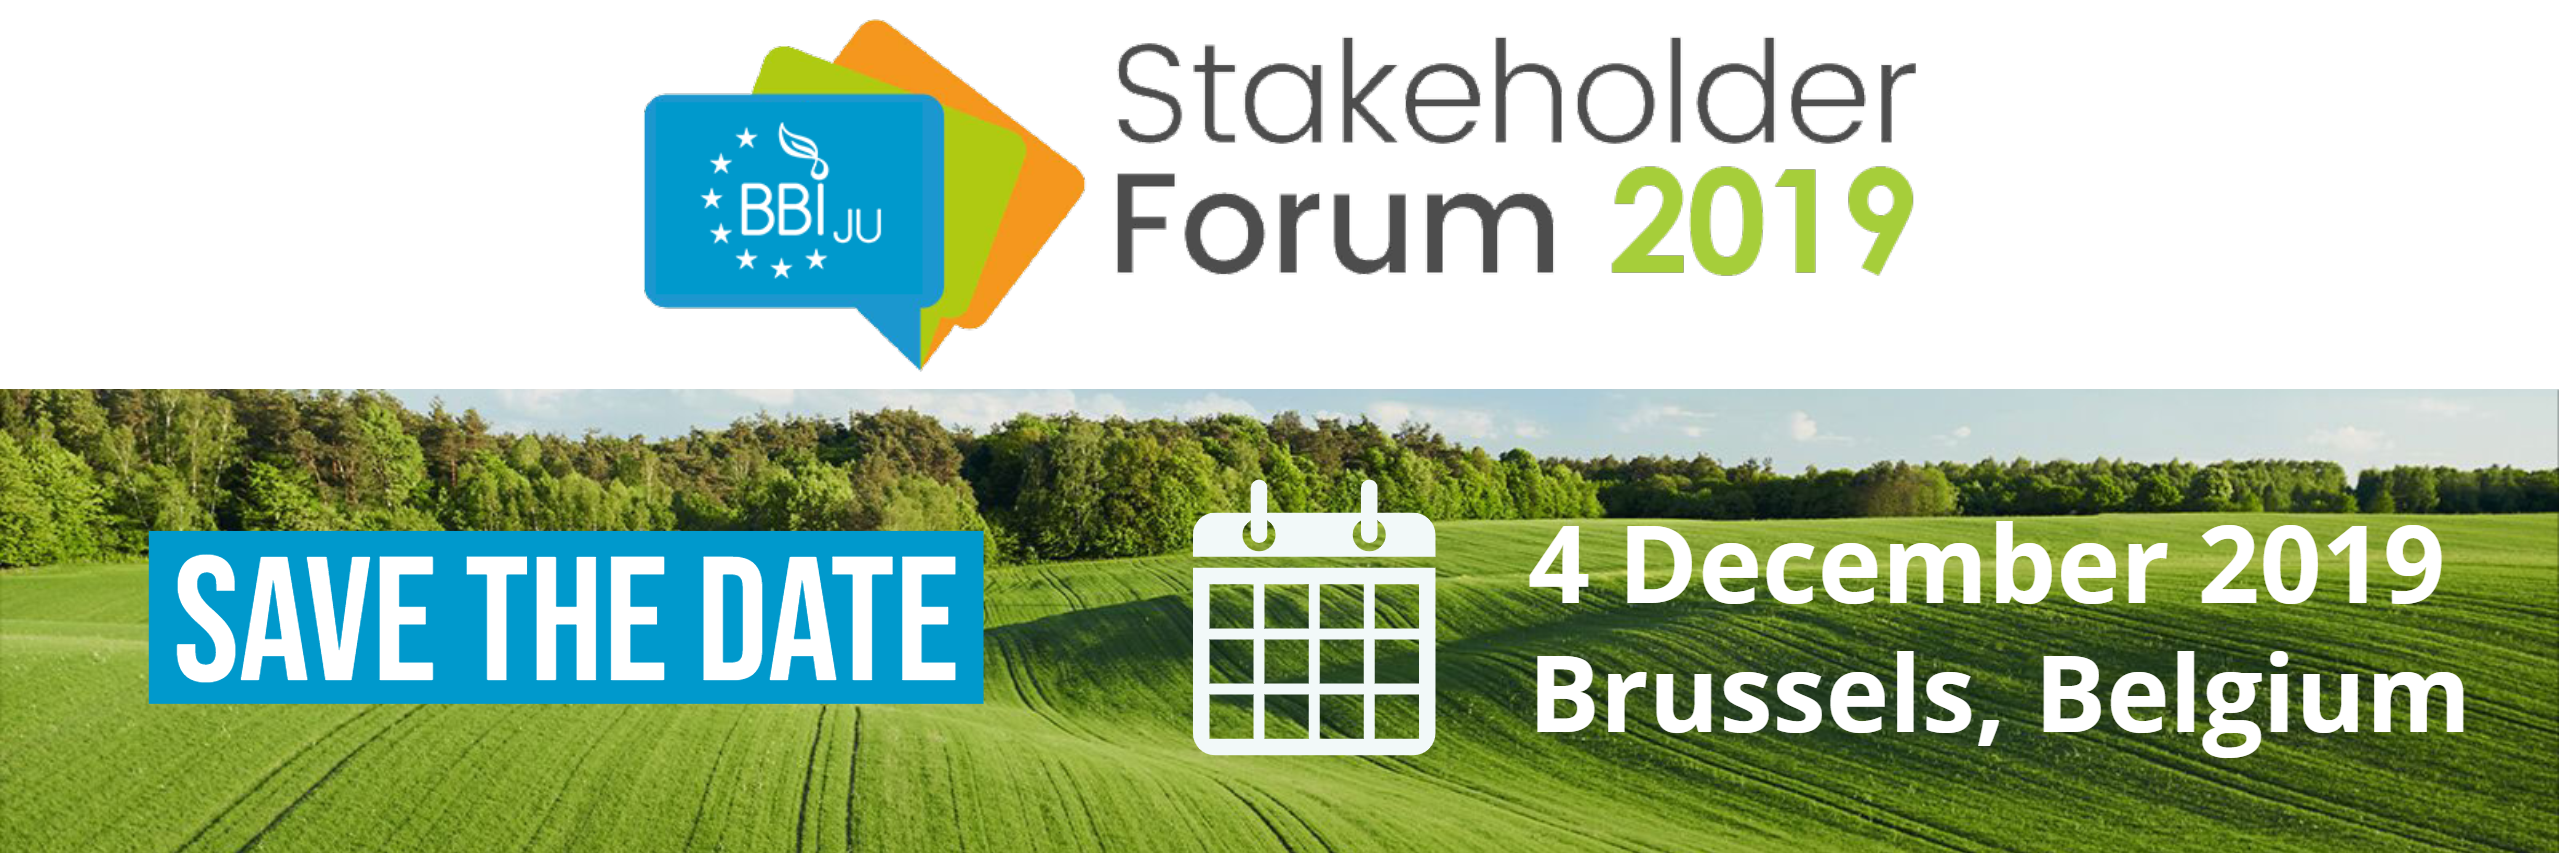 BBI JU Stakeholder Forum 2019 Save the date